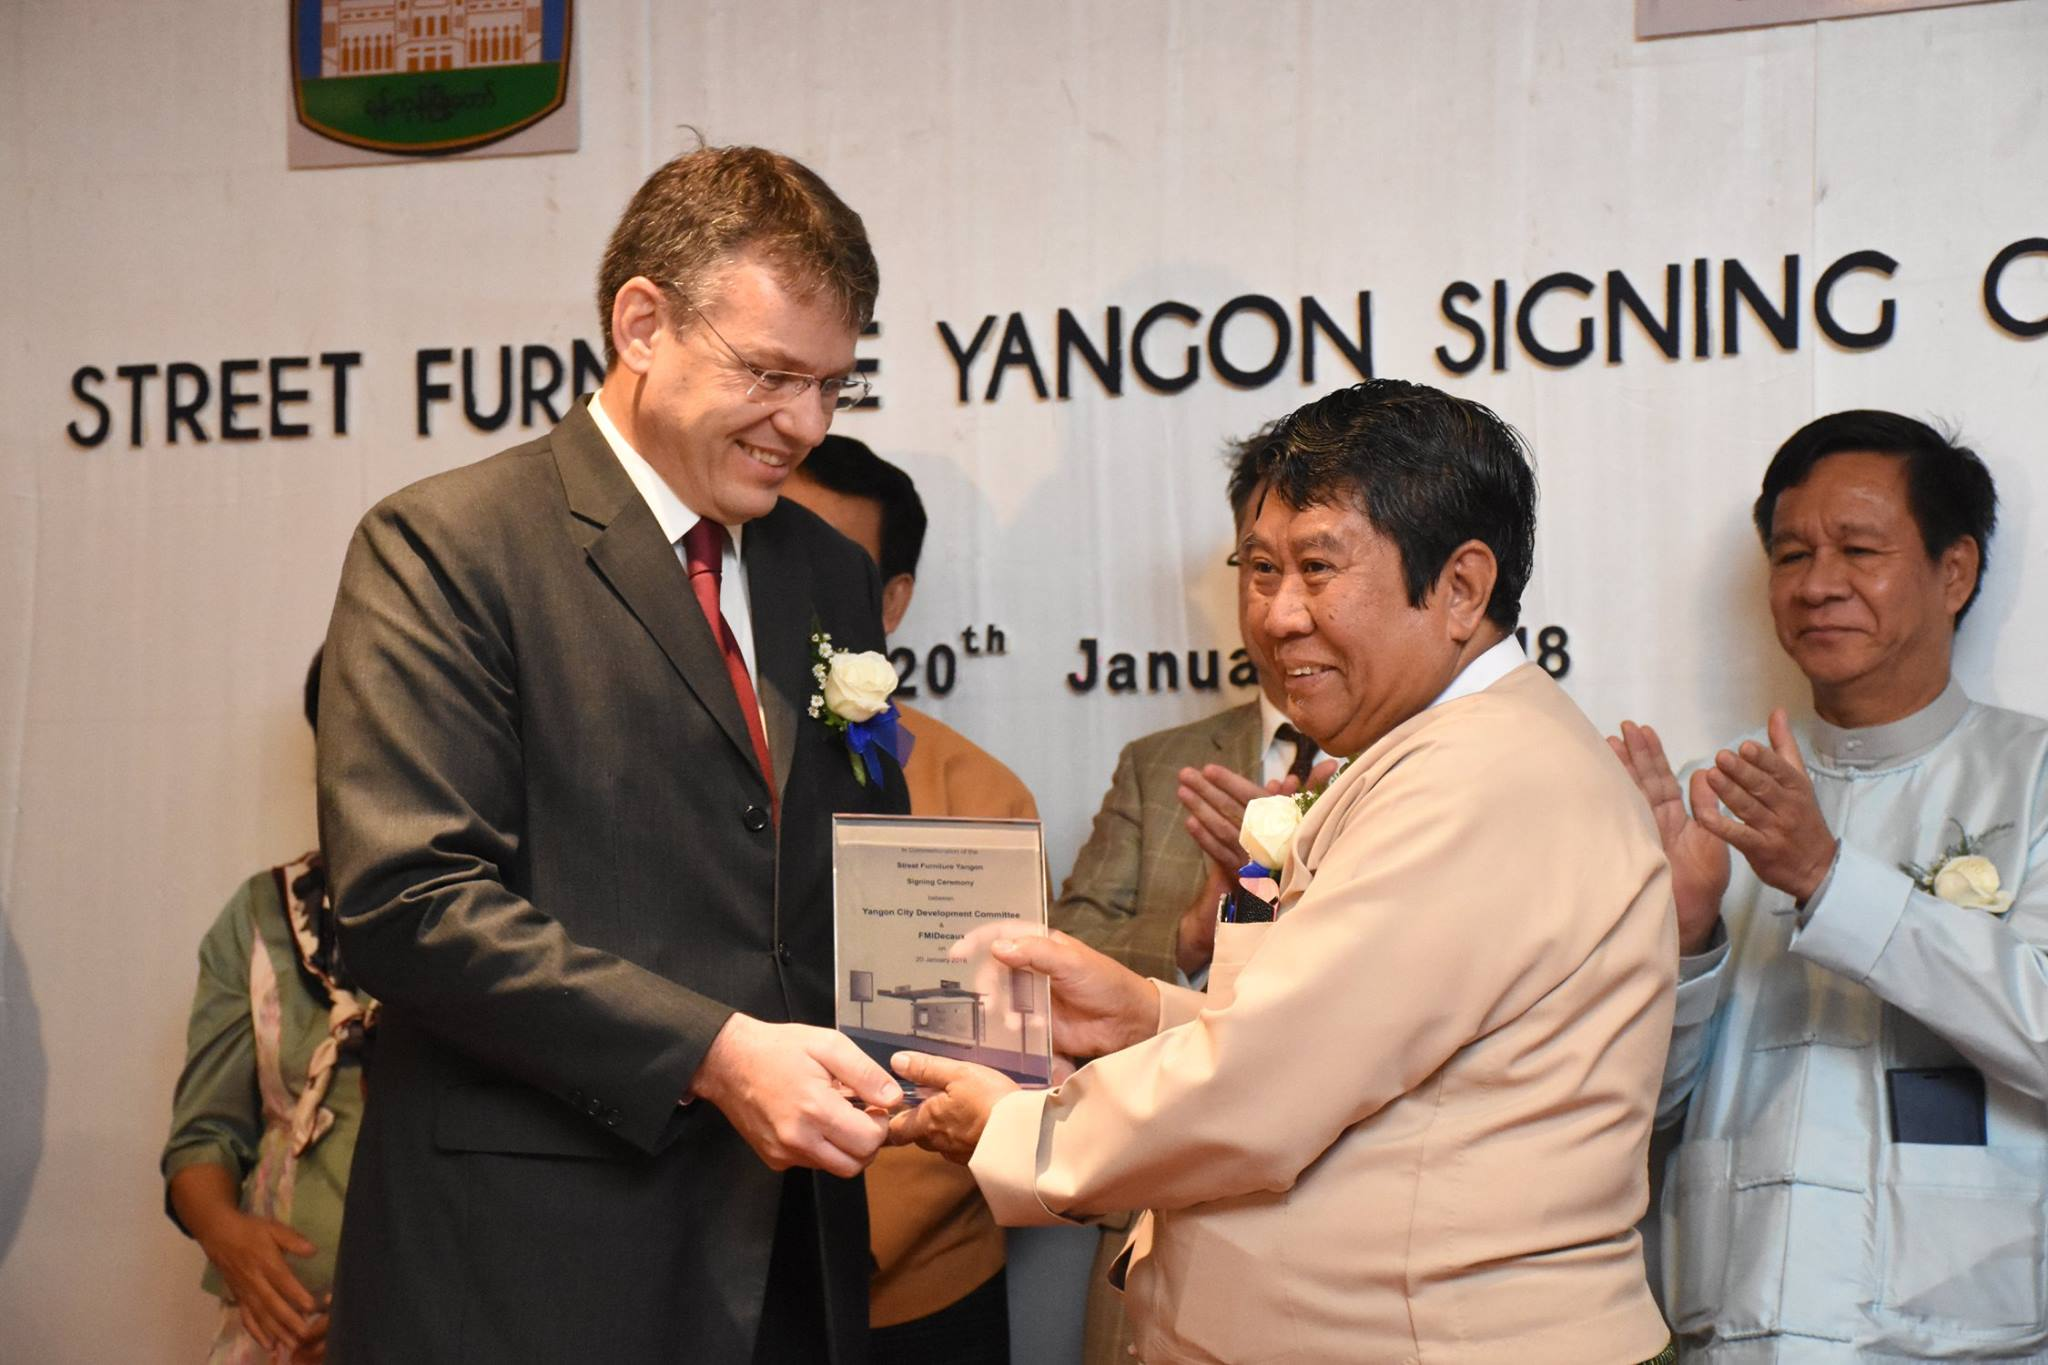 Street Furniture Yangon Signing Ceremony